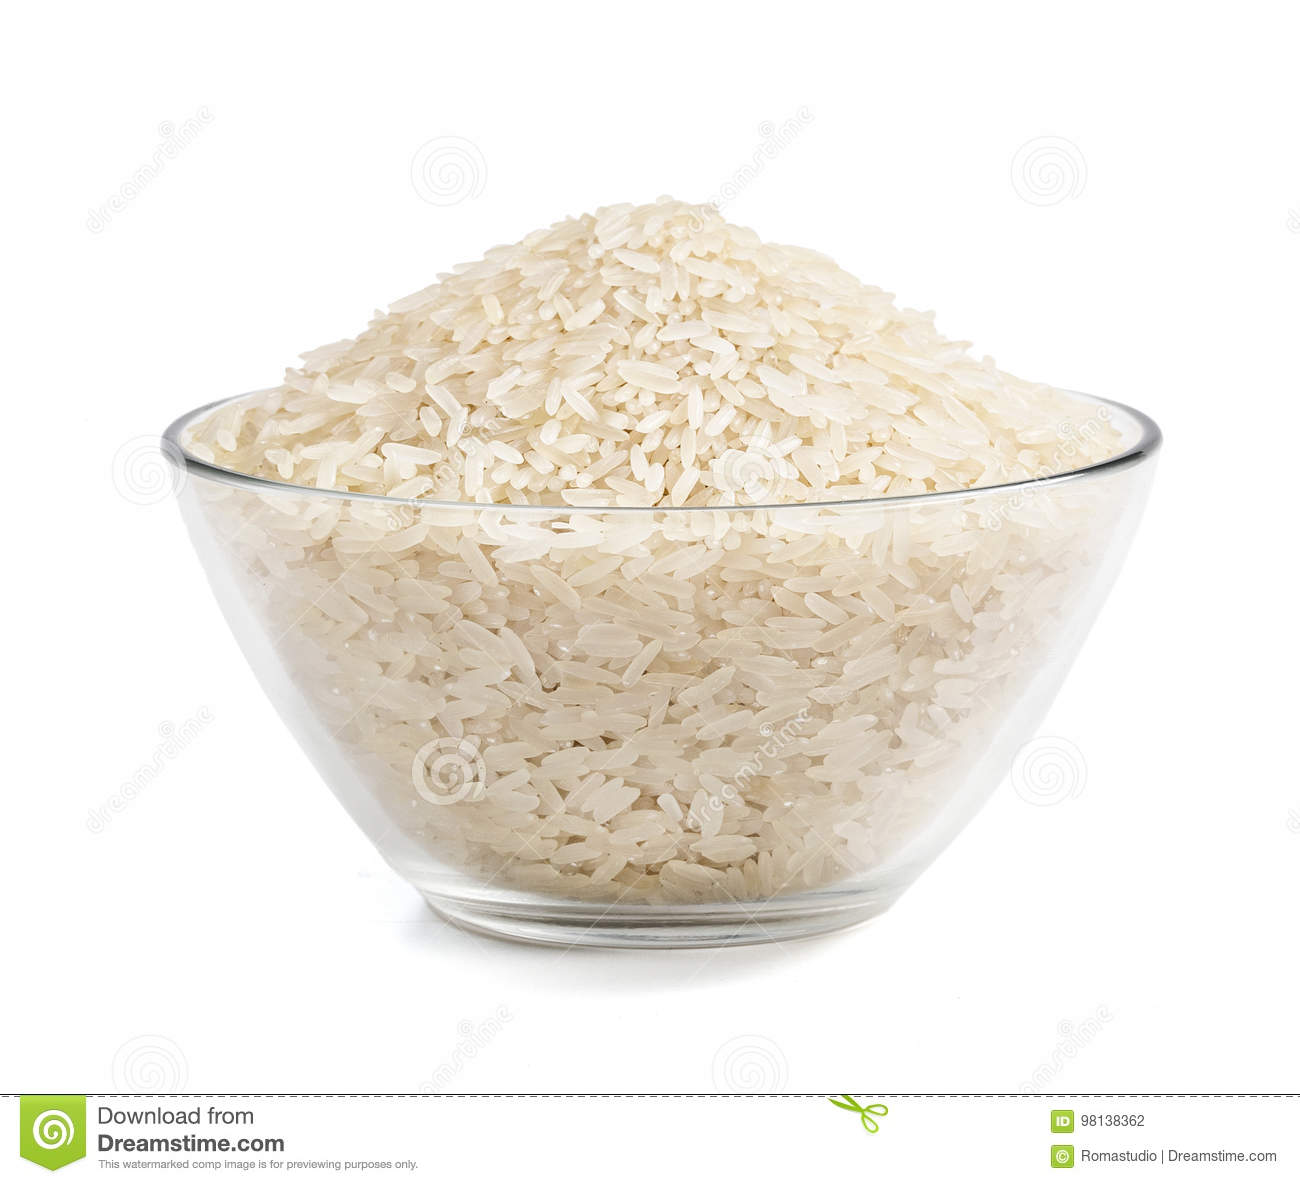 Heap of parboiled rice in glass bowl isolated on white background